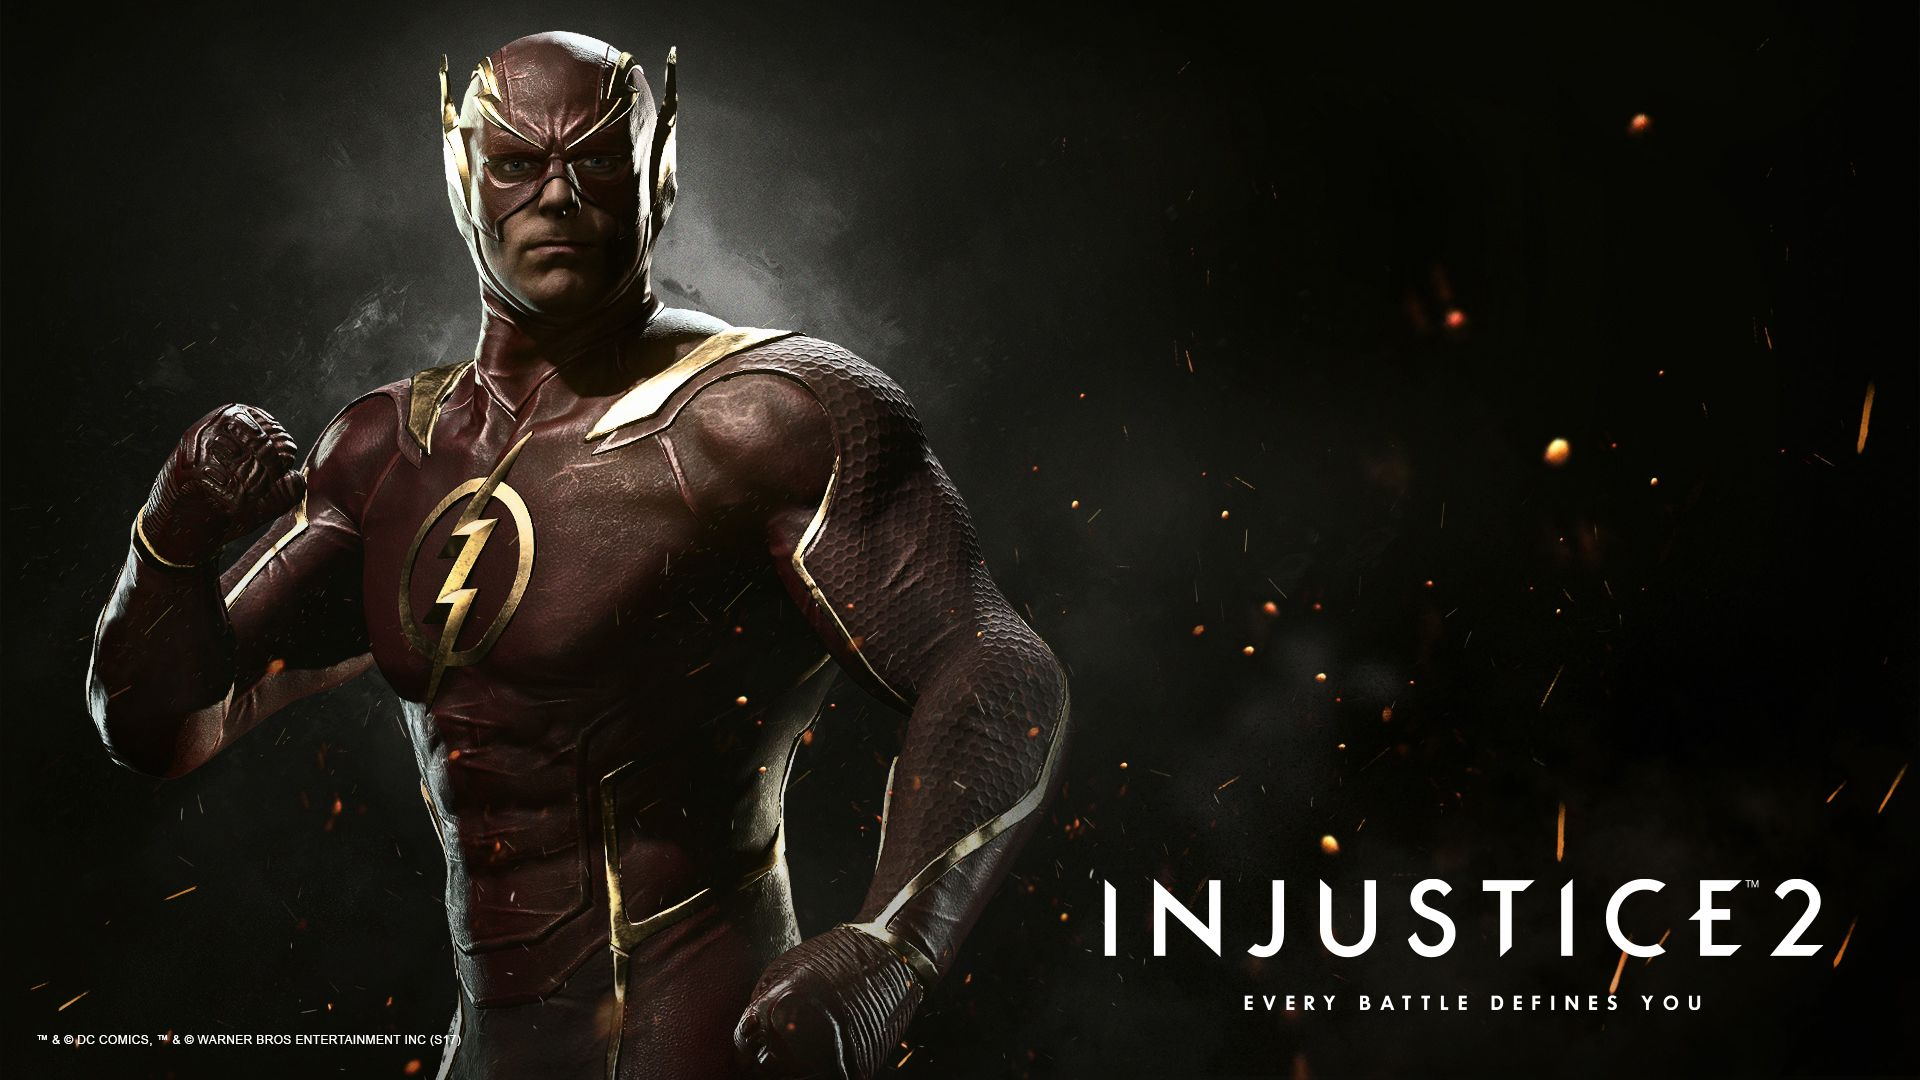 Barry Allen (Injustice)